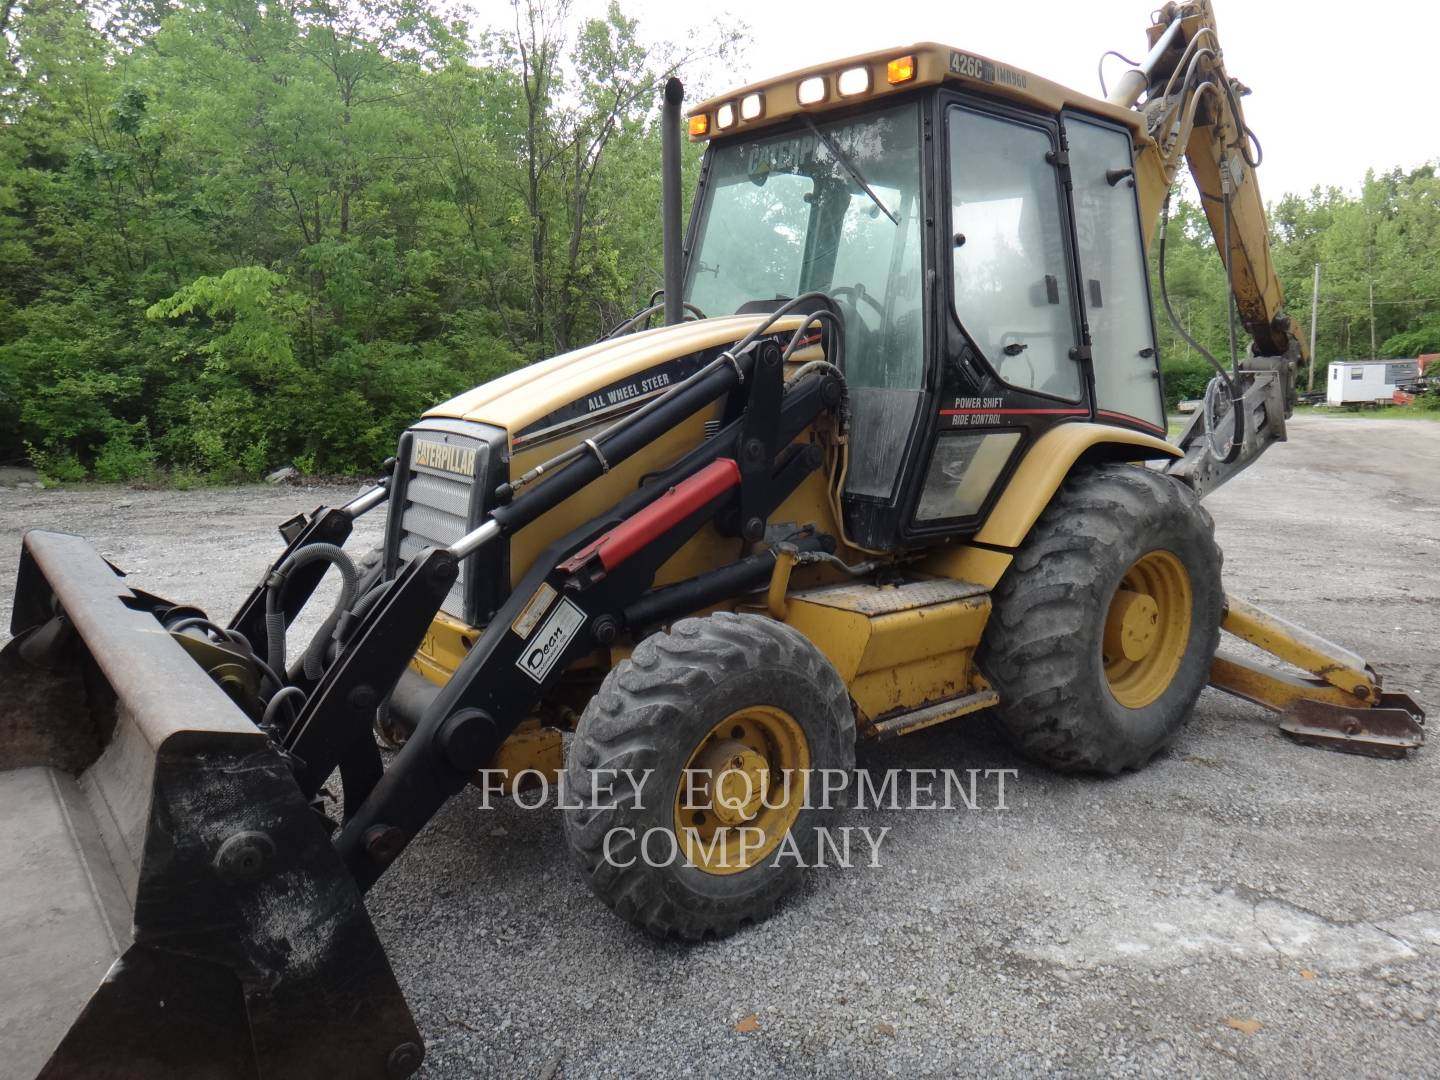 Used Cat Heavy Construction Equipment for Sale - Foley Equipment